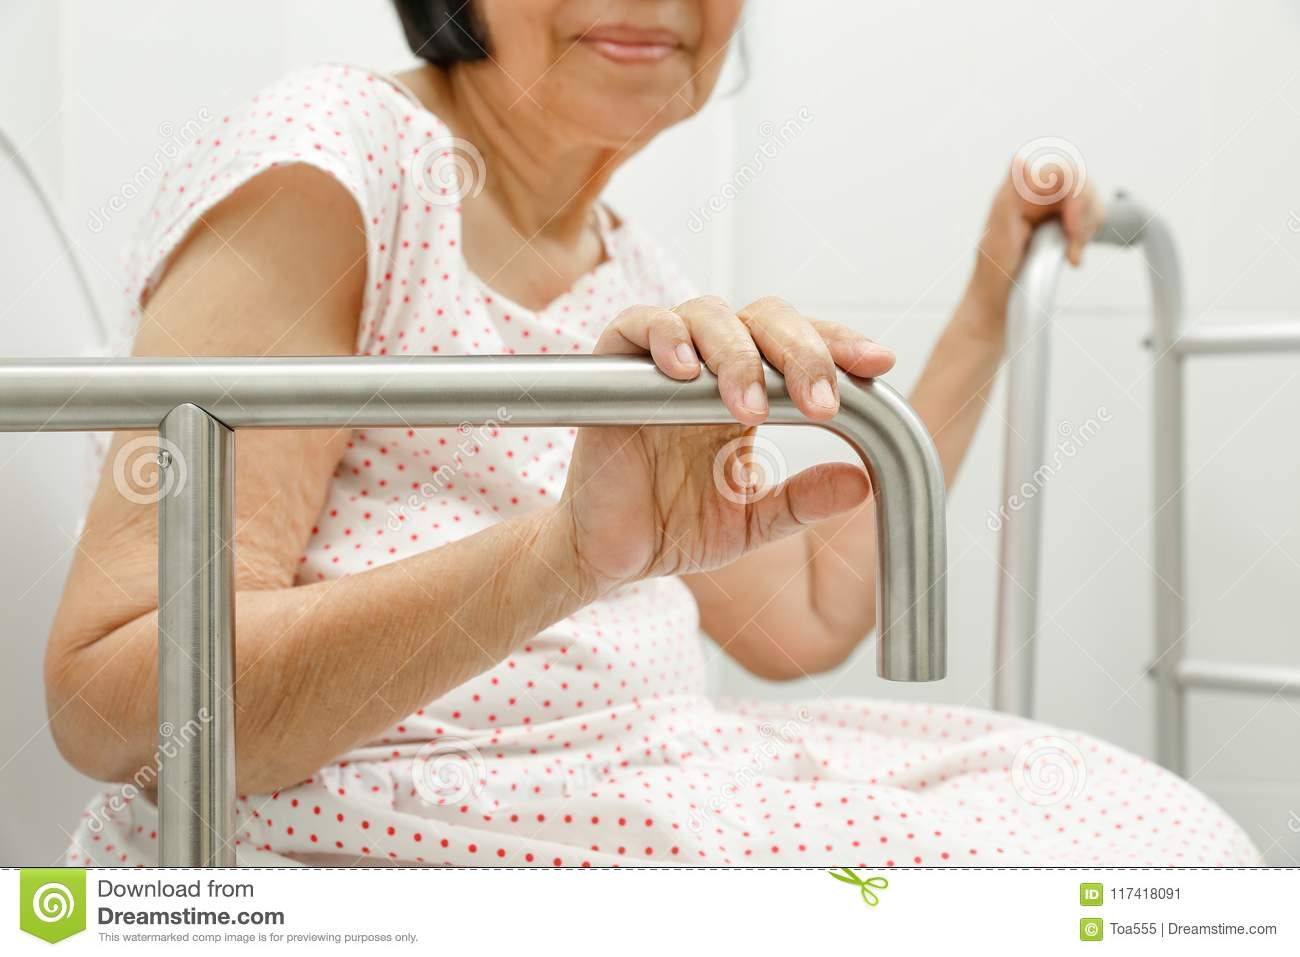 Elderly Woman Holding On Handrail In Toilet. Stock Image - Image of ...